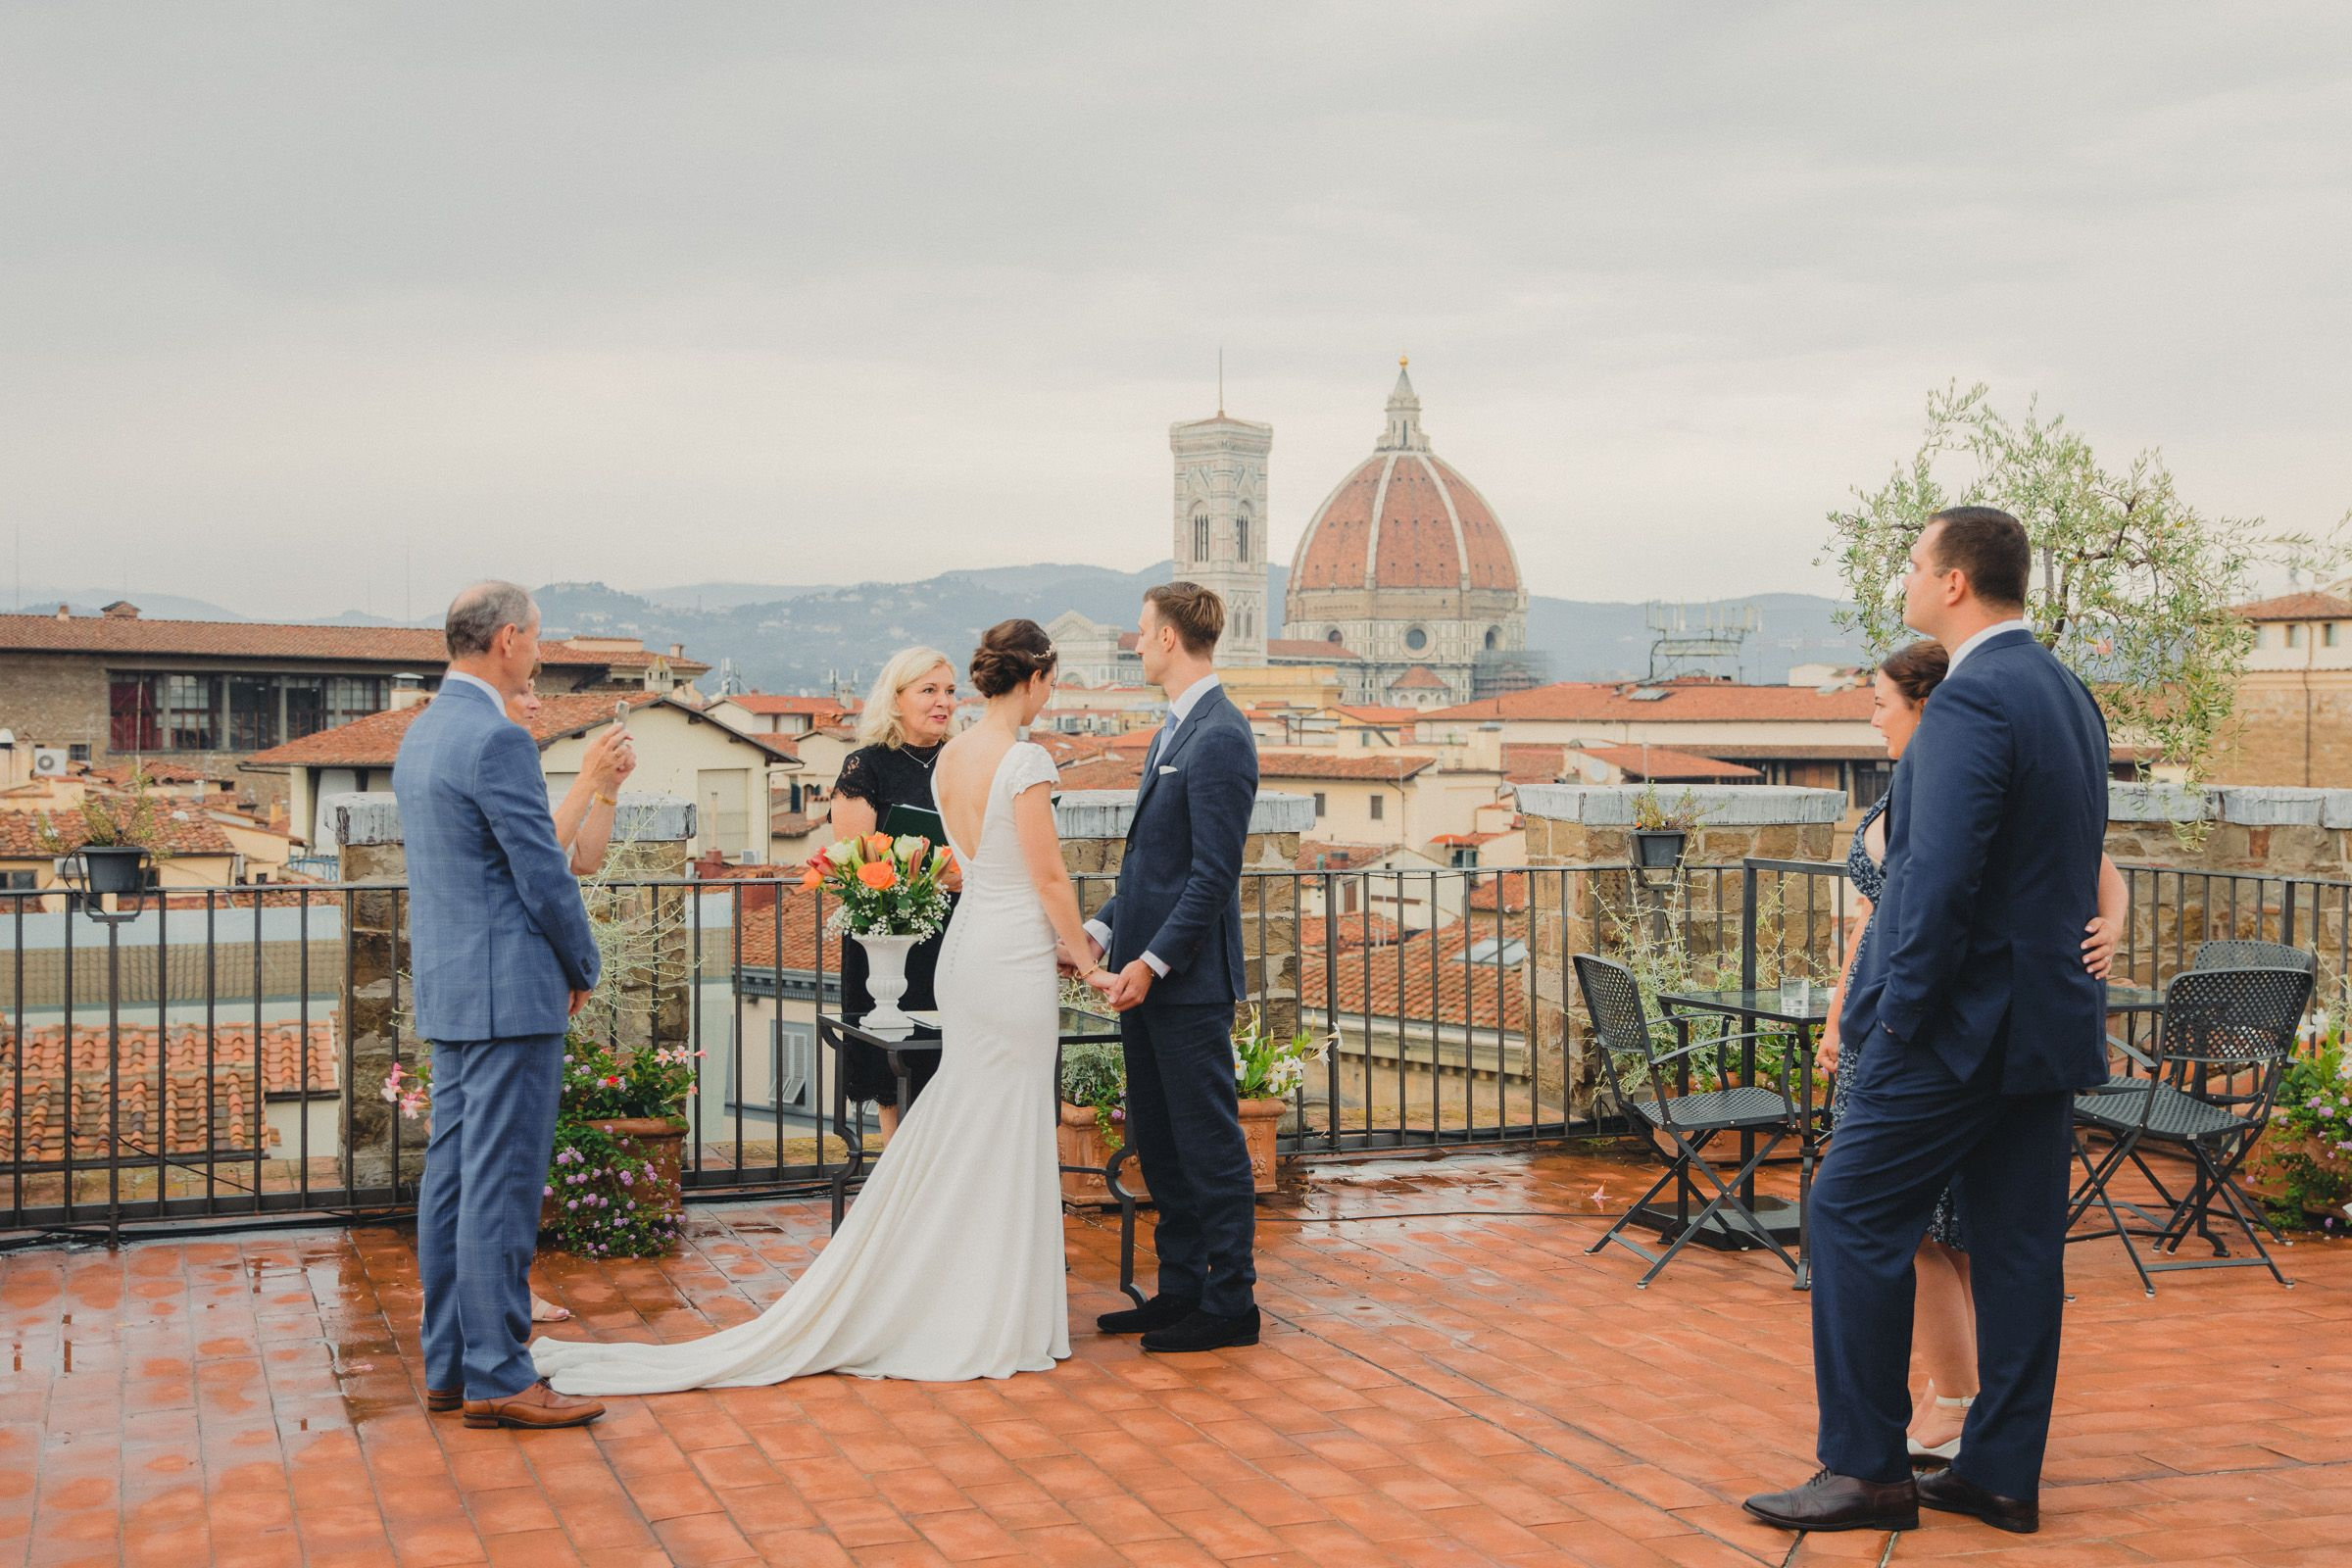 tuscanpledges-wedding-in-italy-florence-gallery-02